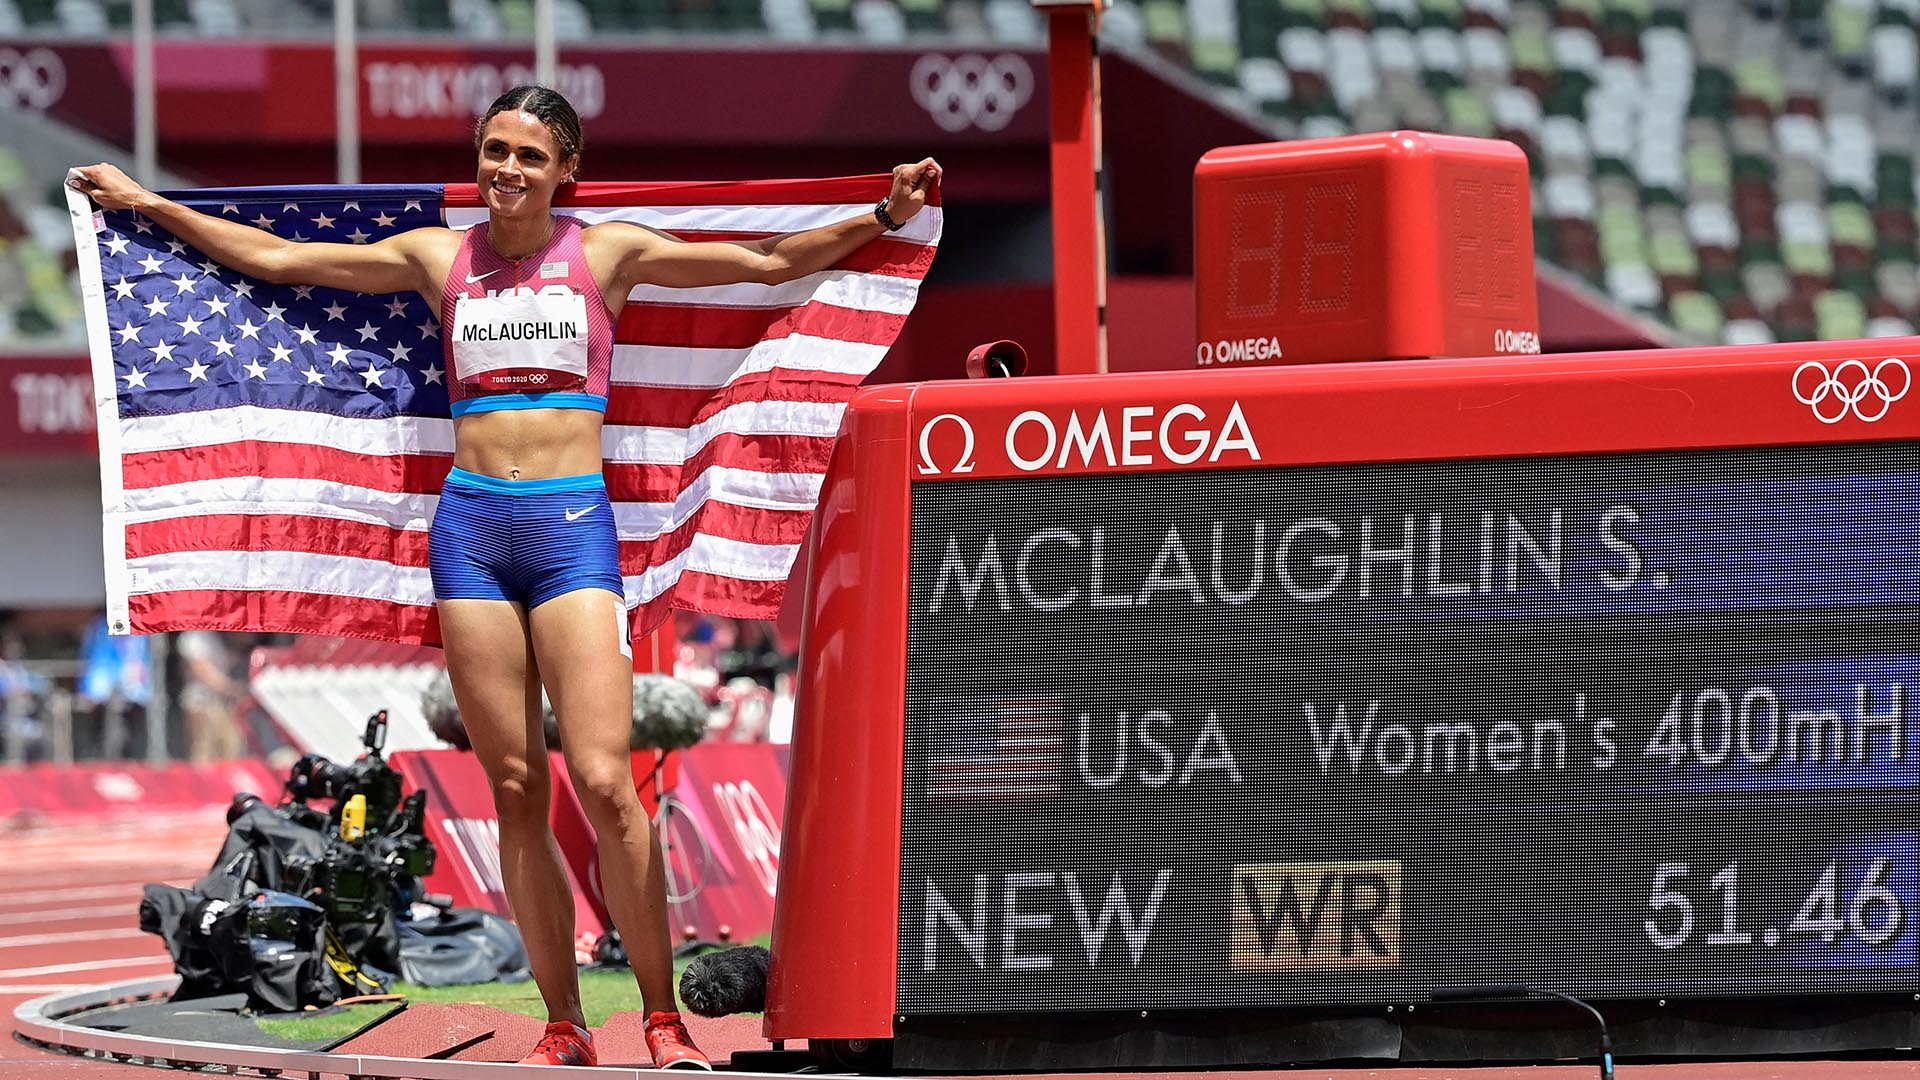 Image for McLaughlin shatters own 400mH WR in 51.46 for Olympic gold